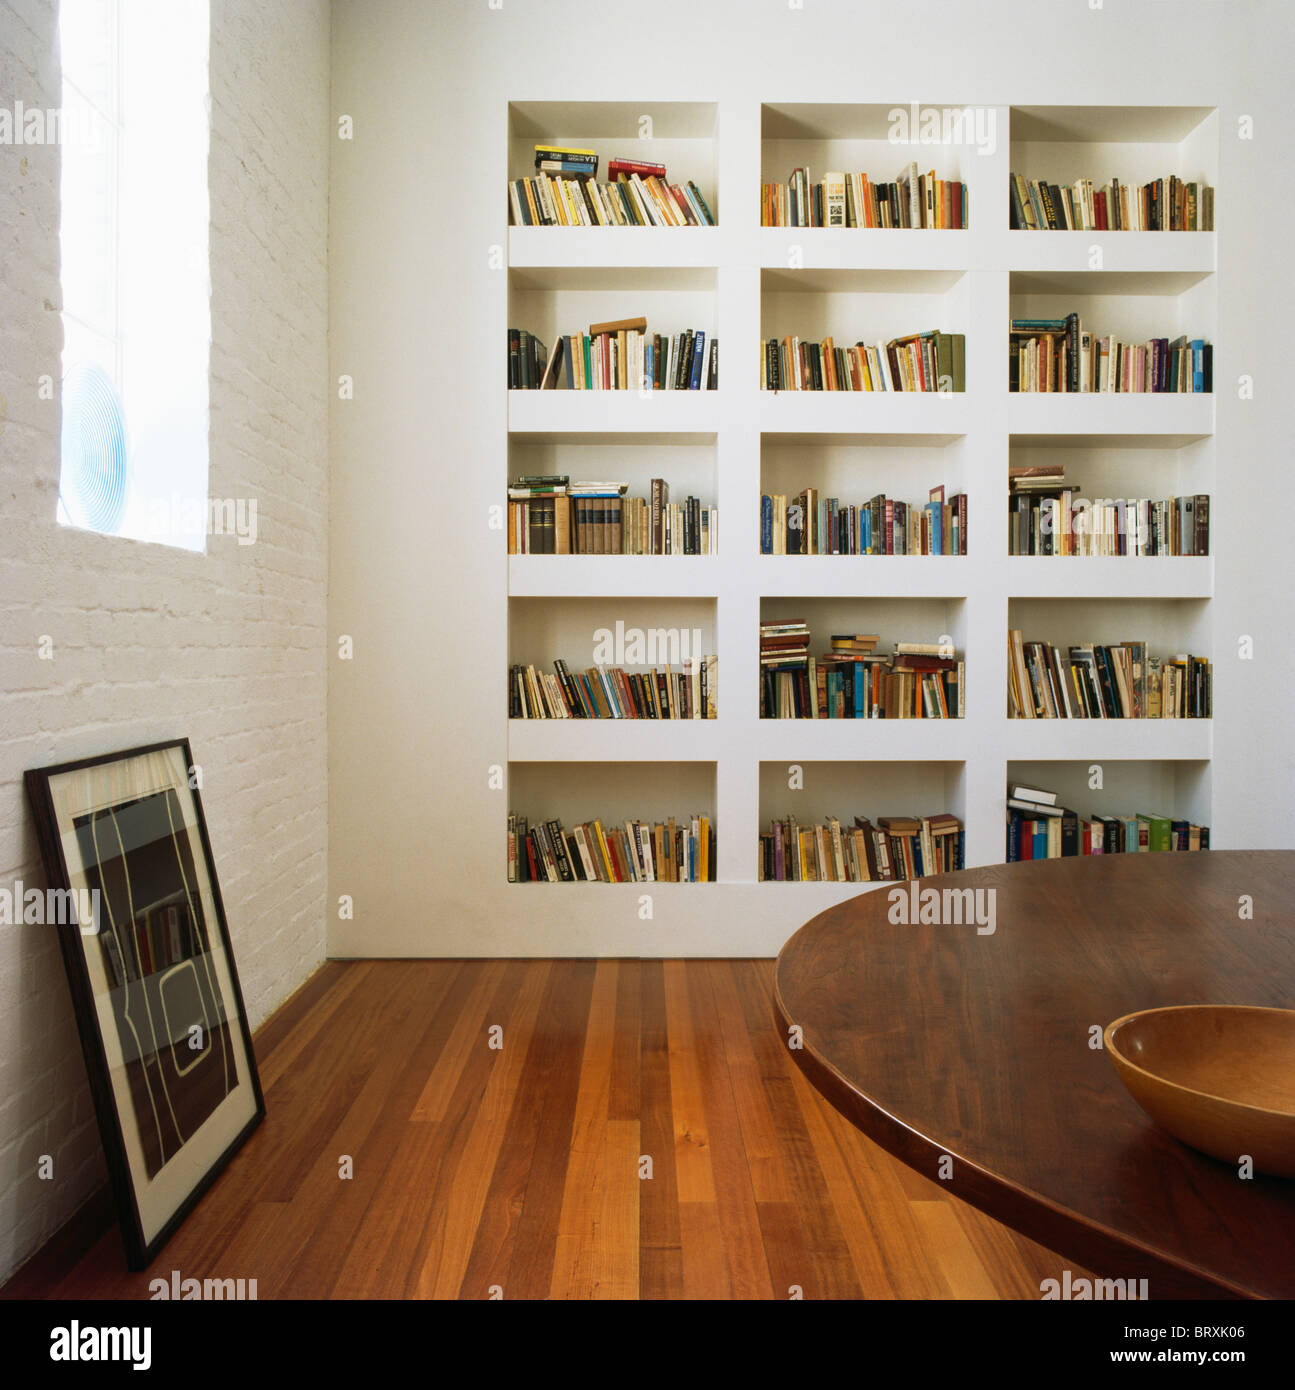 White recessed bookshelves in modern white dining room with wooden flooring - Stock Image